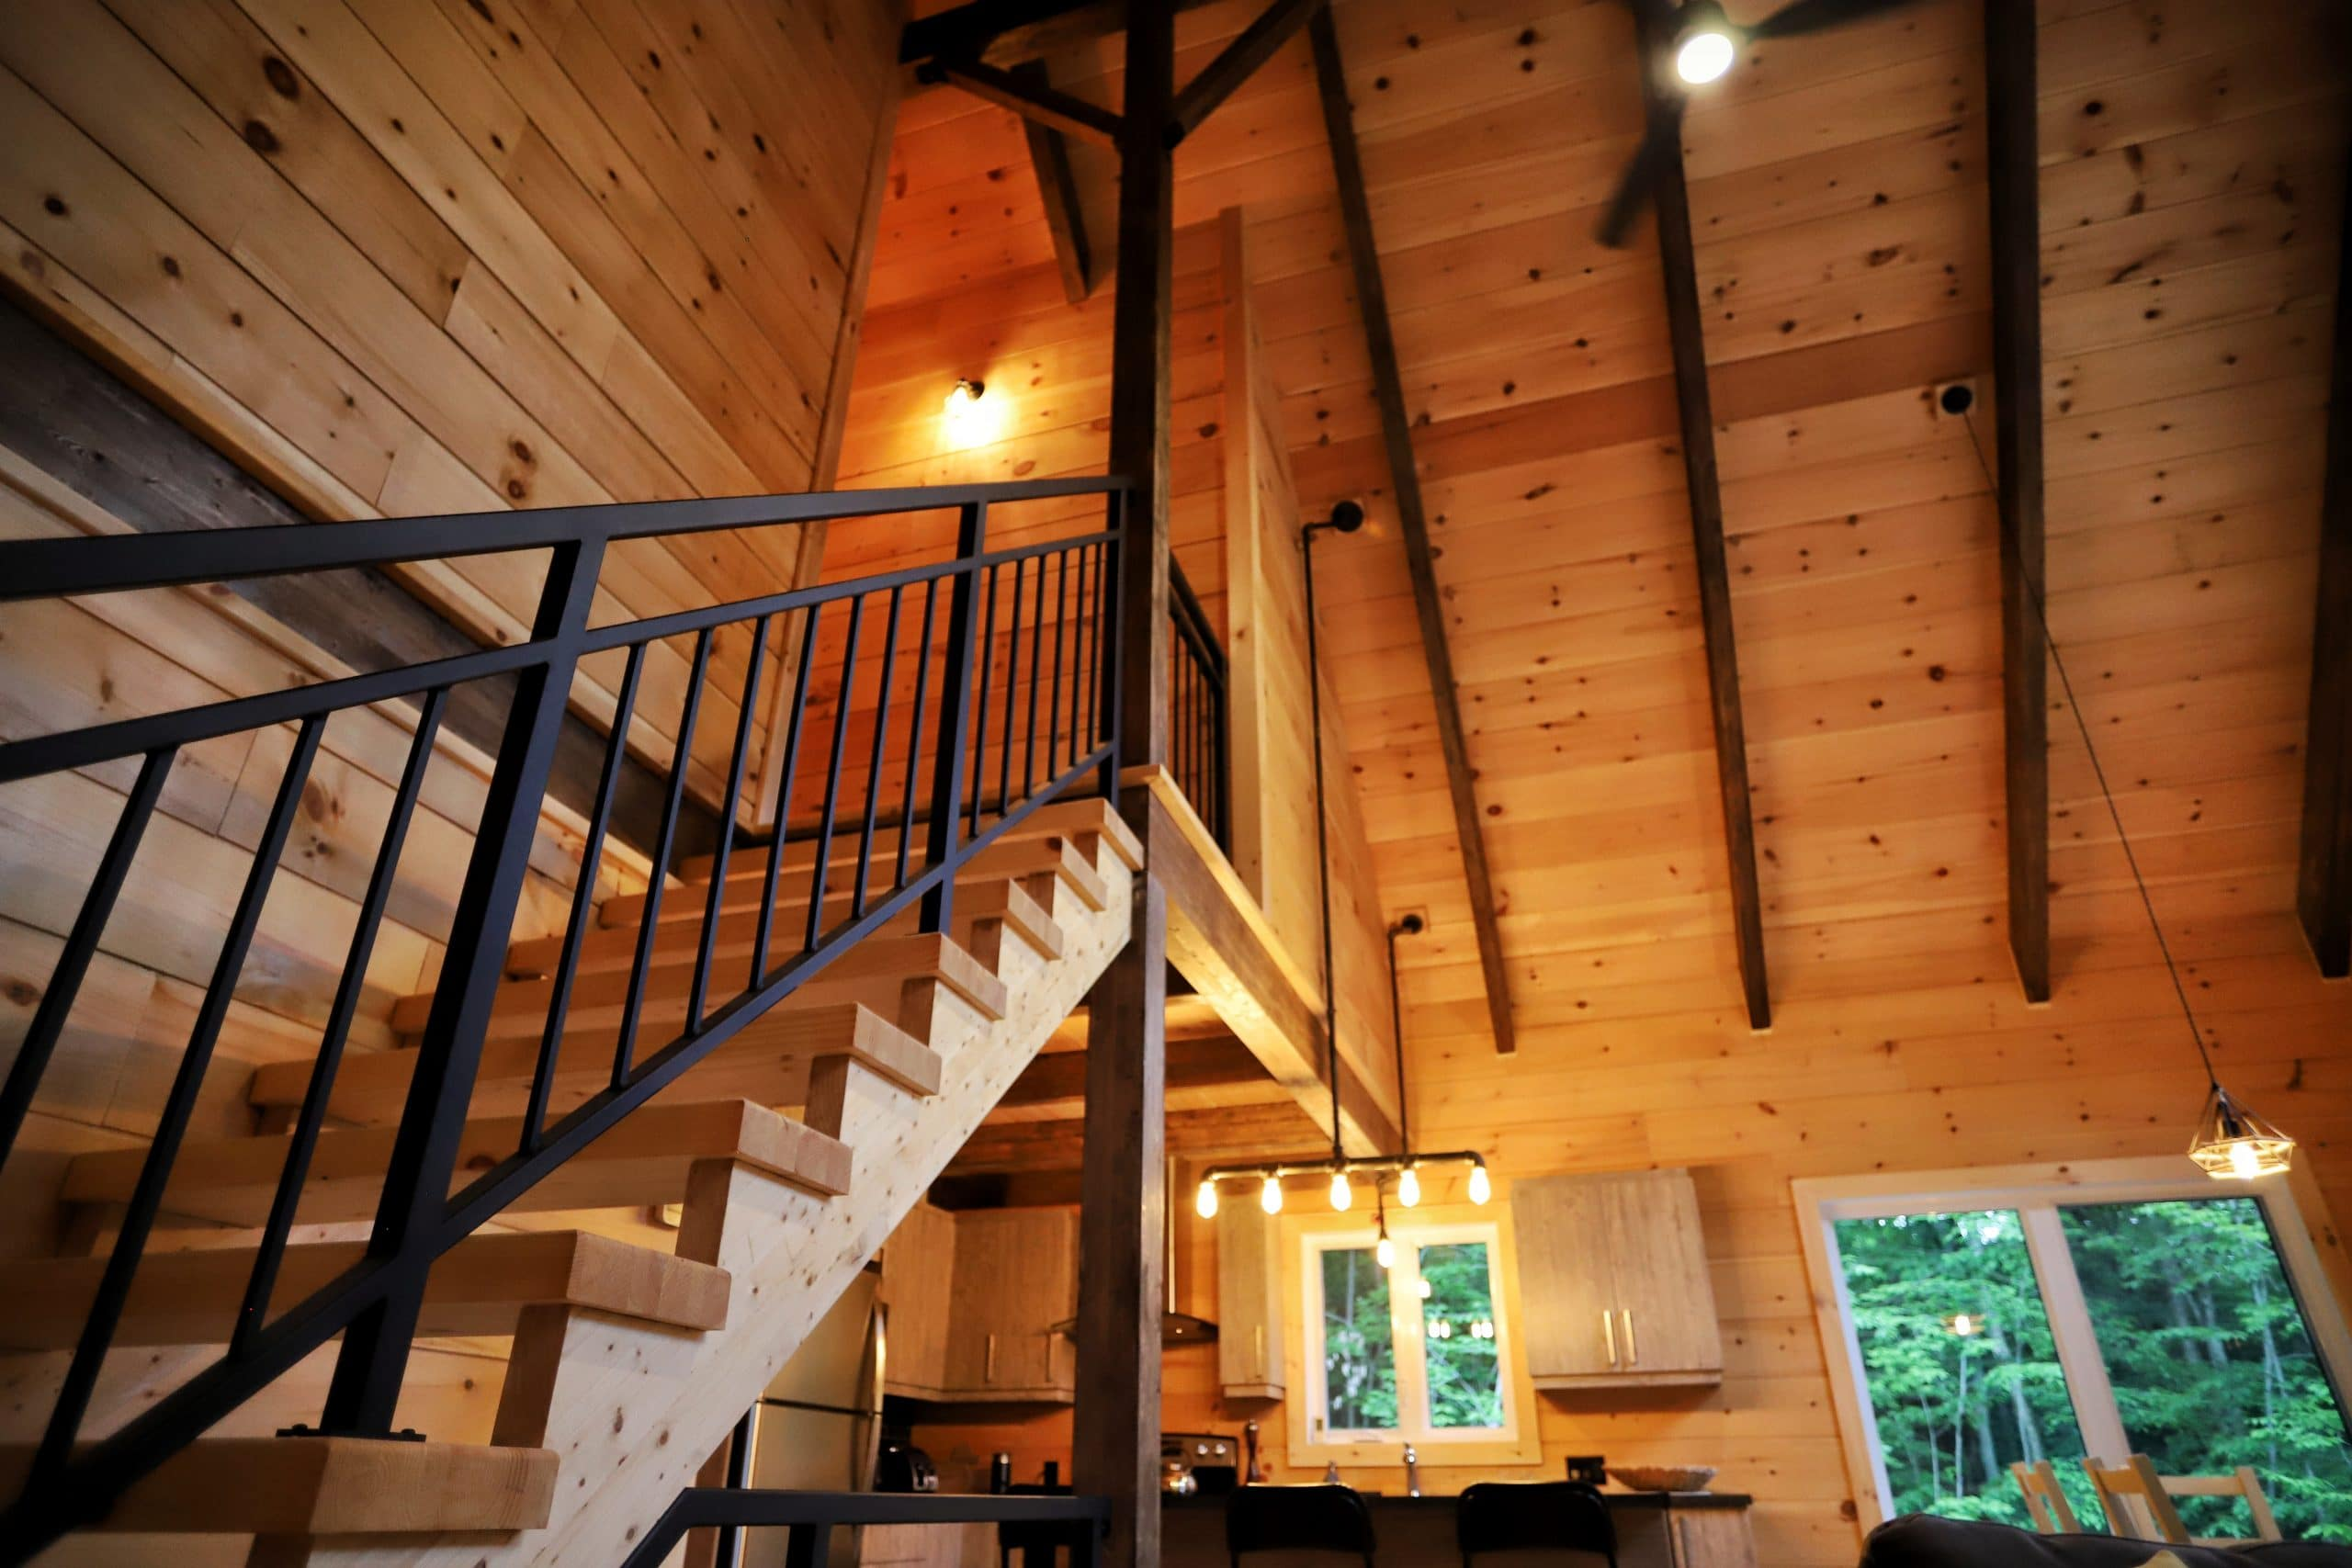 Photos of the chalet, number 28